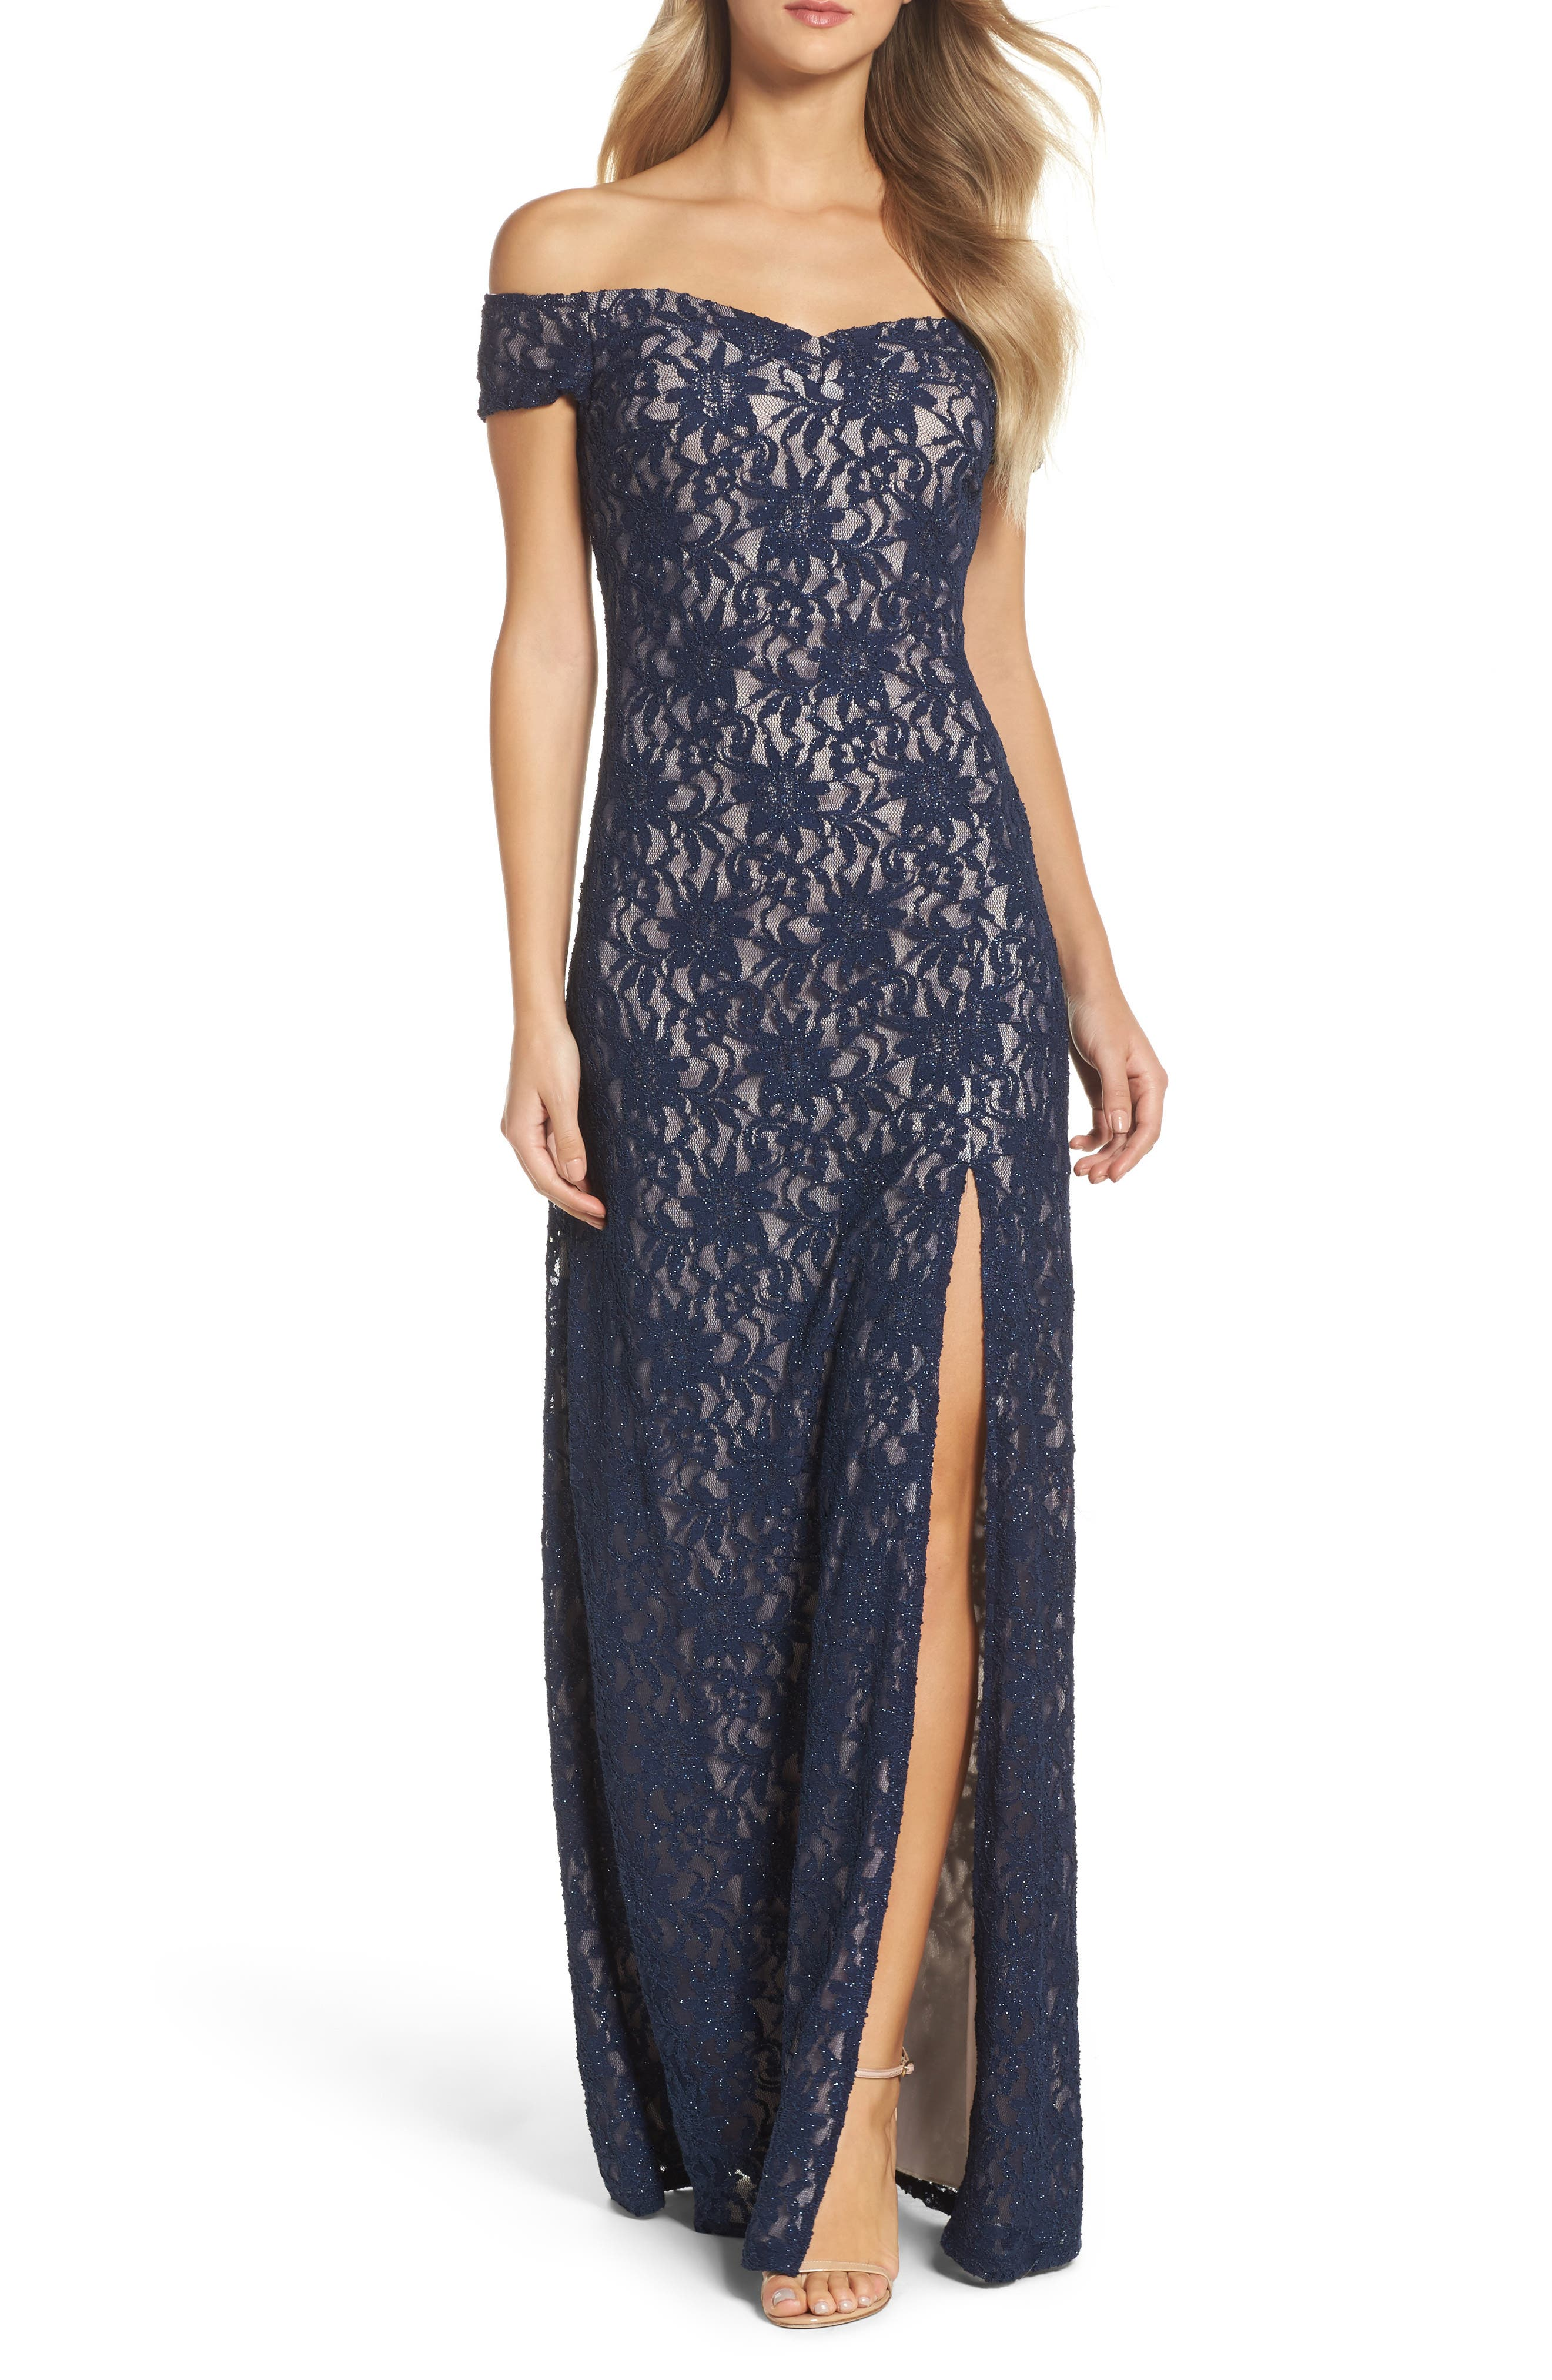 Sequin Hearts Off the Shoulder Glitter Lace Gown